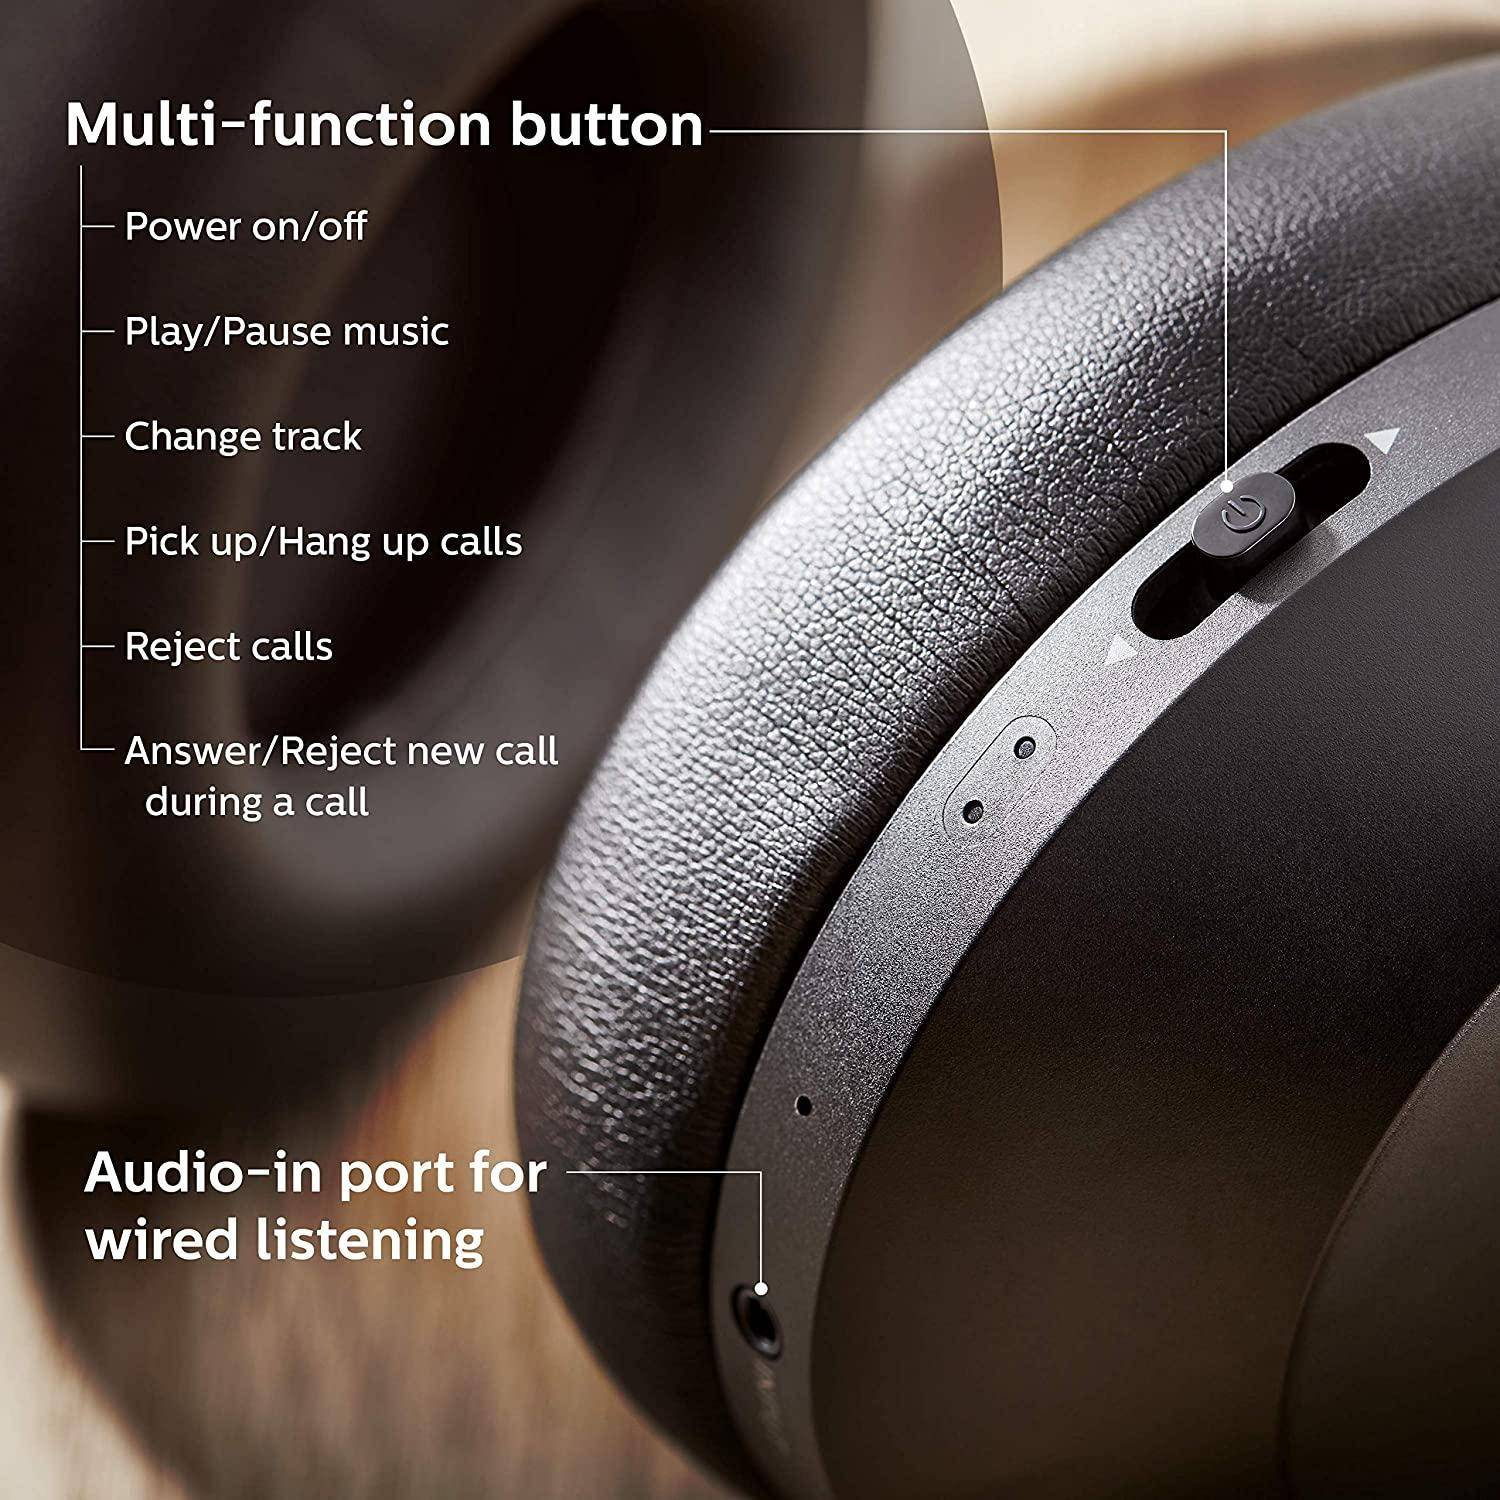 MULTIFUNCTIONAL BUTTONS